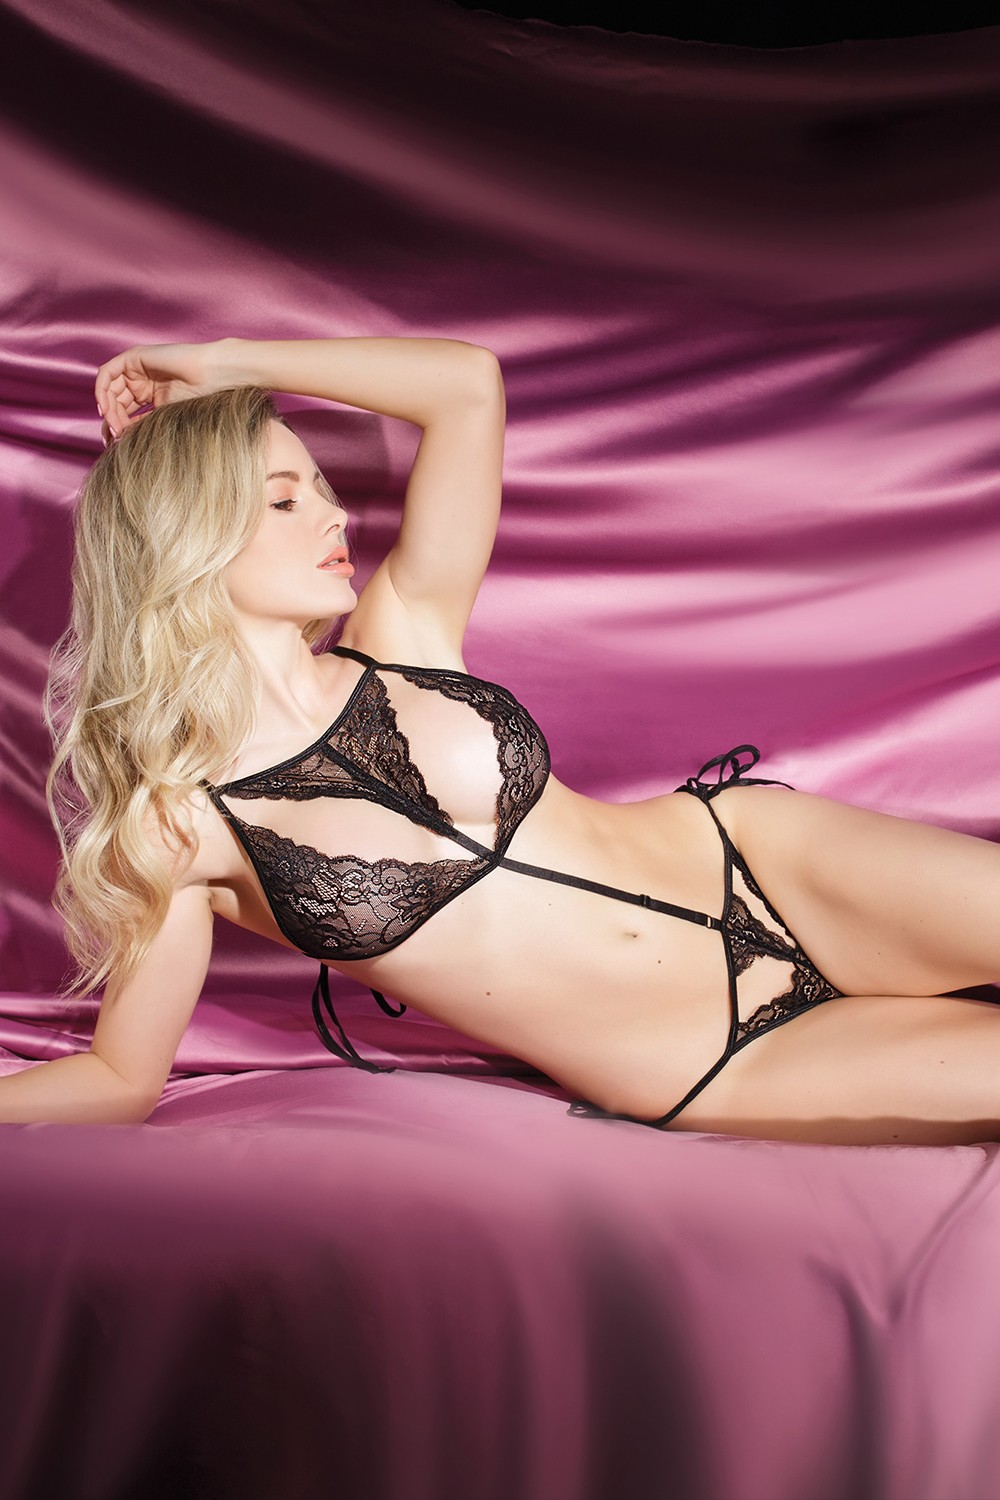 da2efa106d308 2492 - Teddy - Black - View All - Coquette ELITE Packaged Line ...